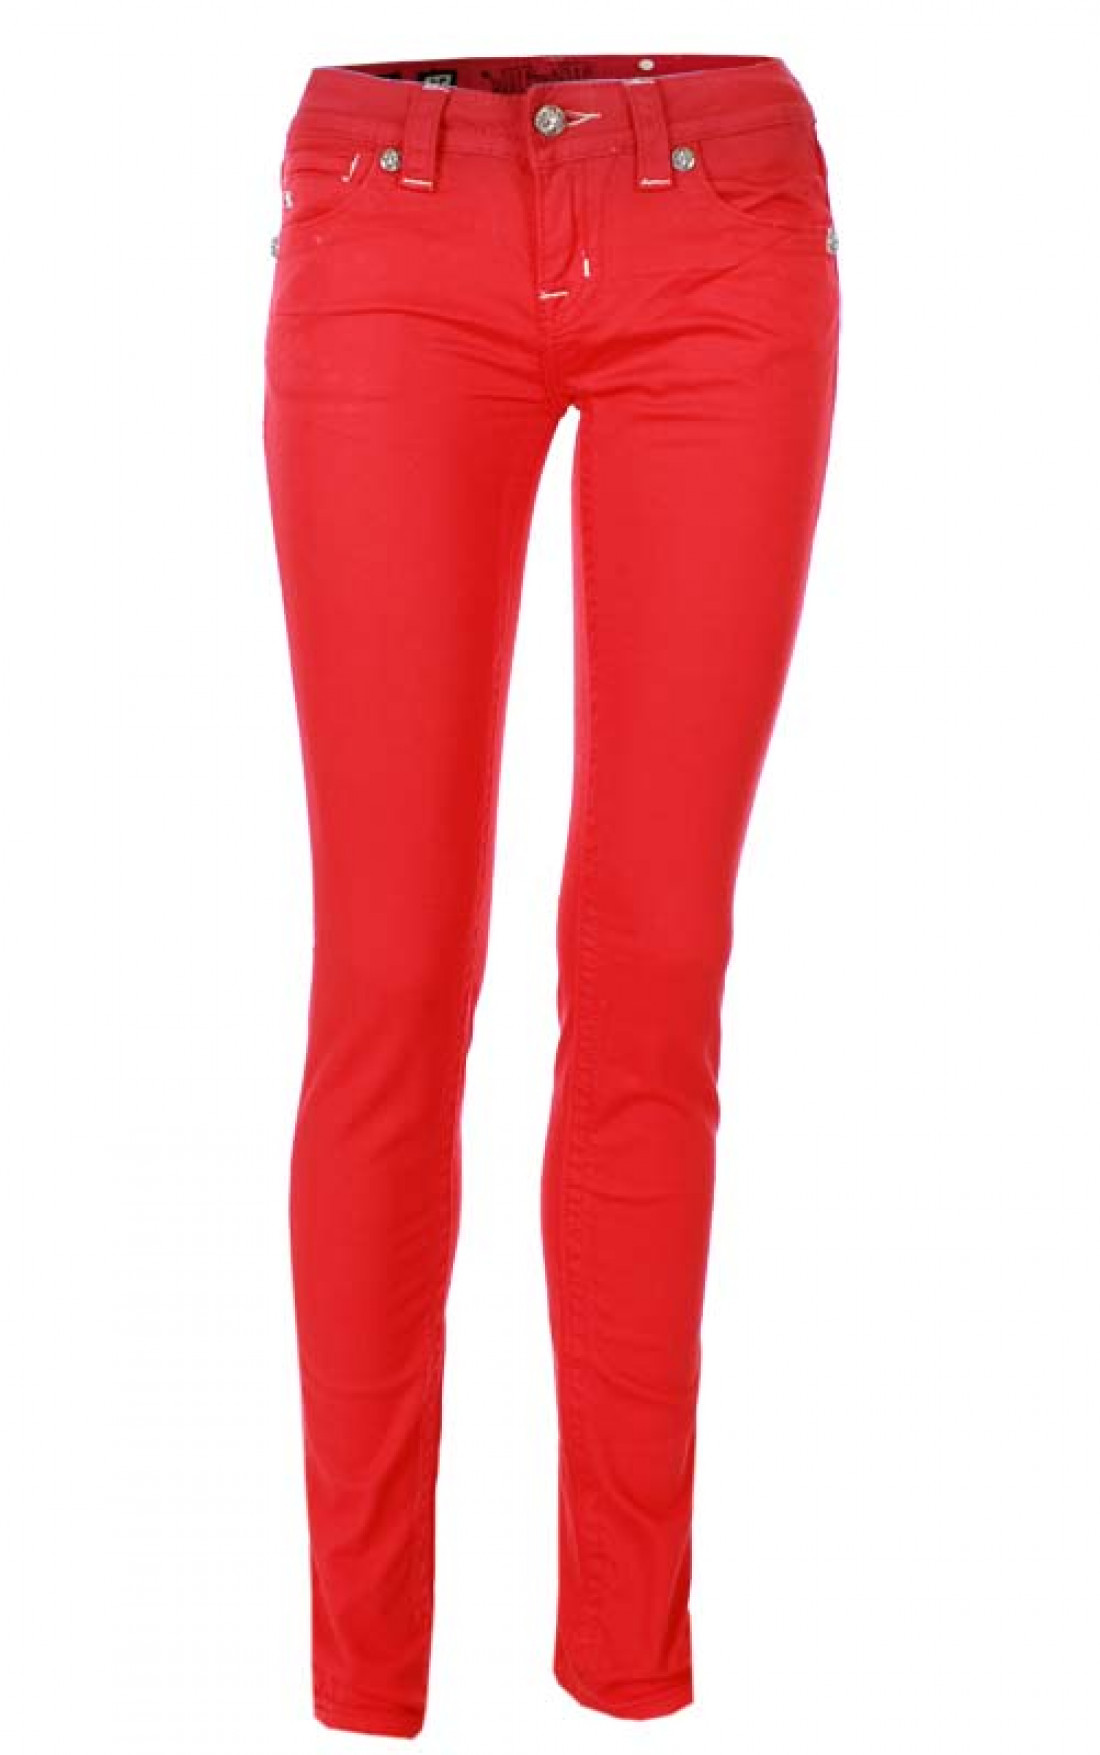 Shop Target for Red Jeans you will love at great low prices. Spend $35+ or use your REDcard & get free 2-day shipping on most items or same-day pick-up in store.